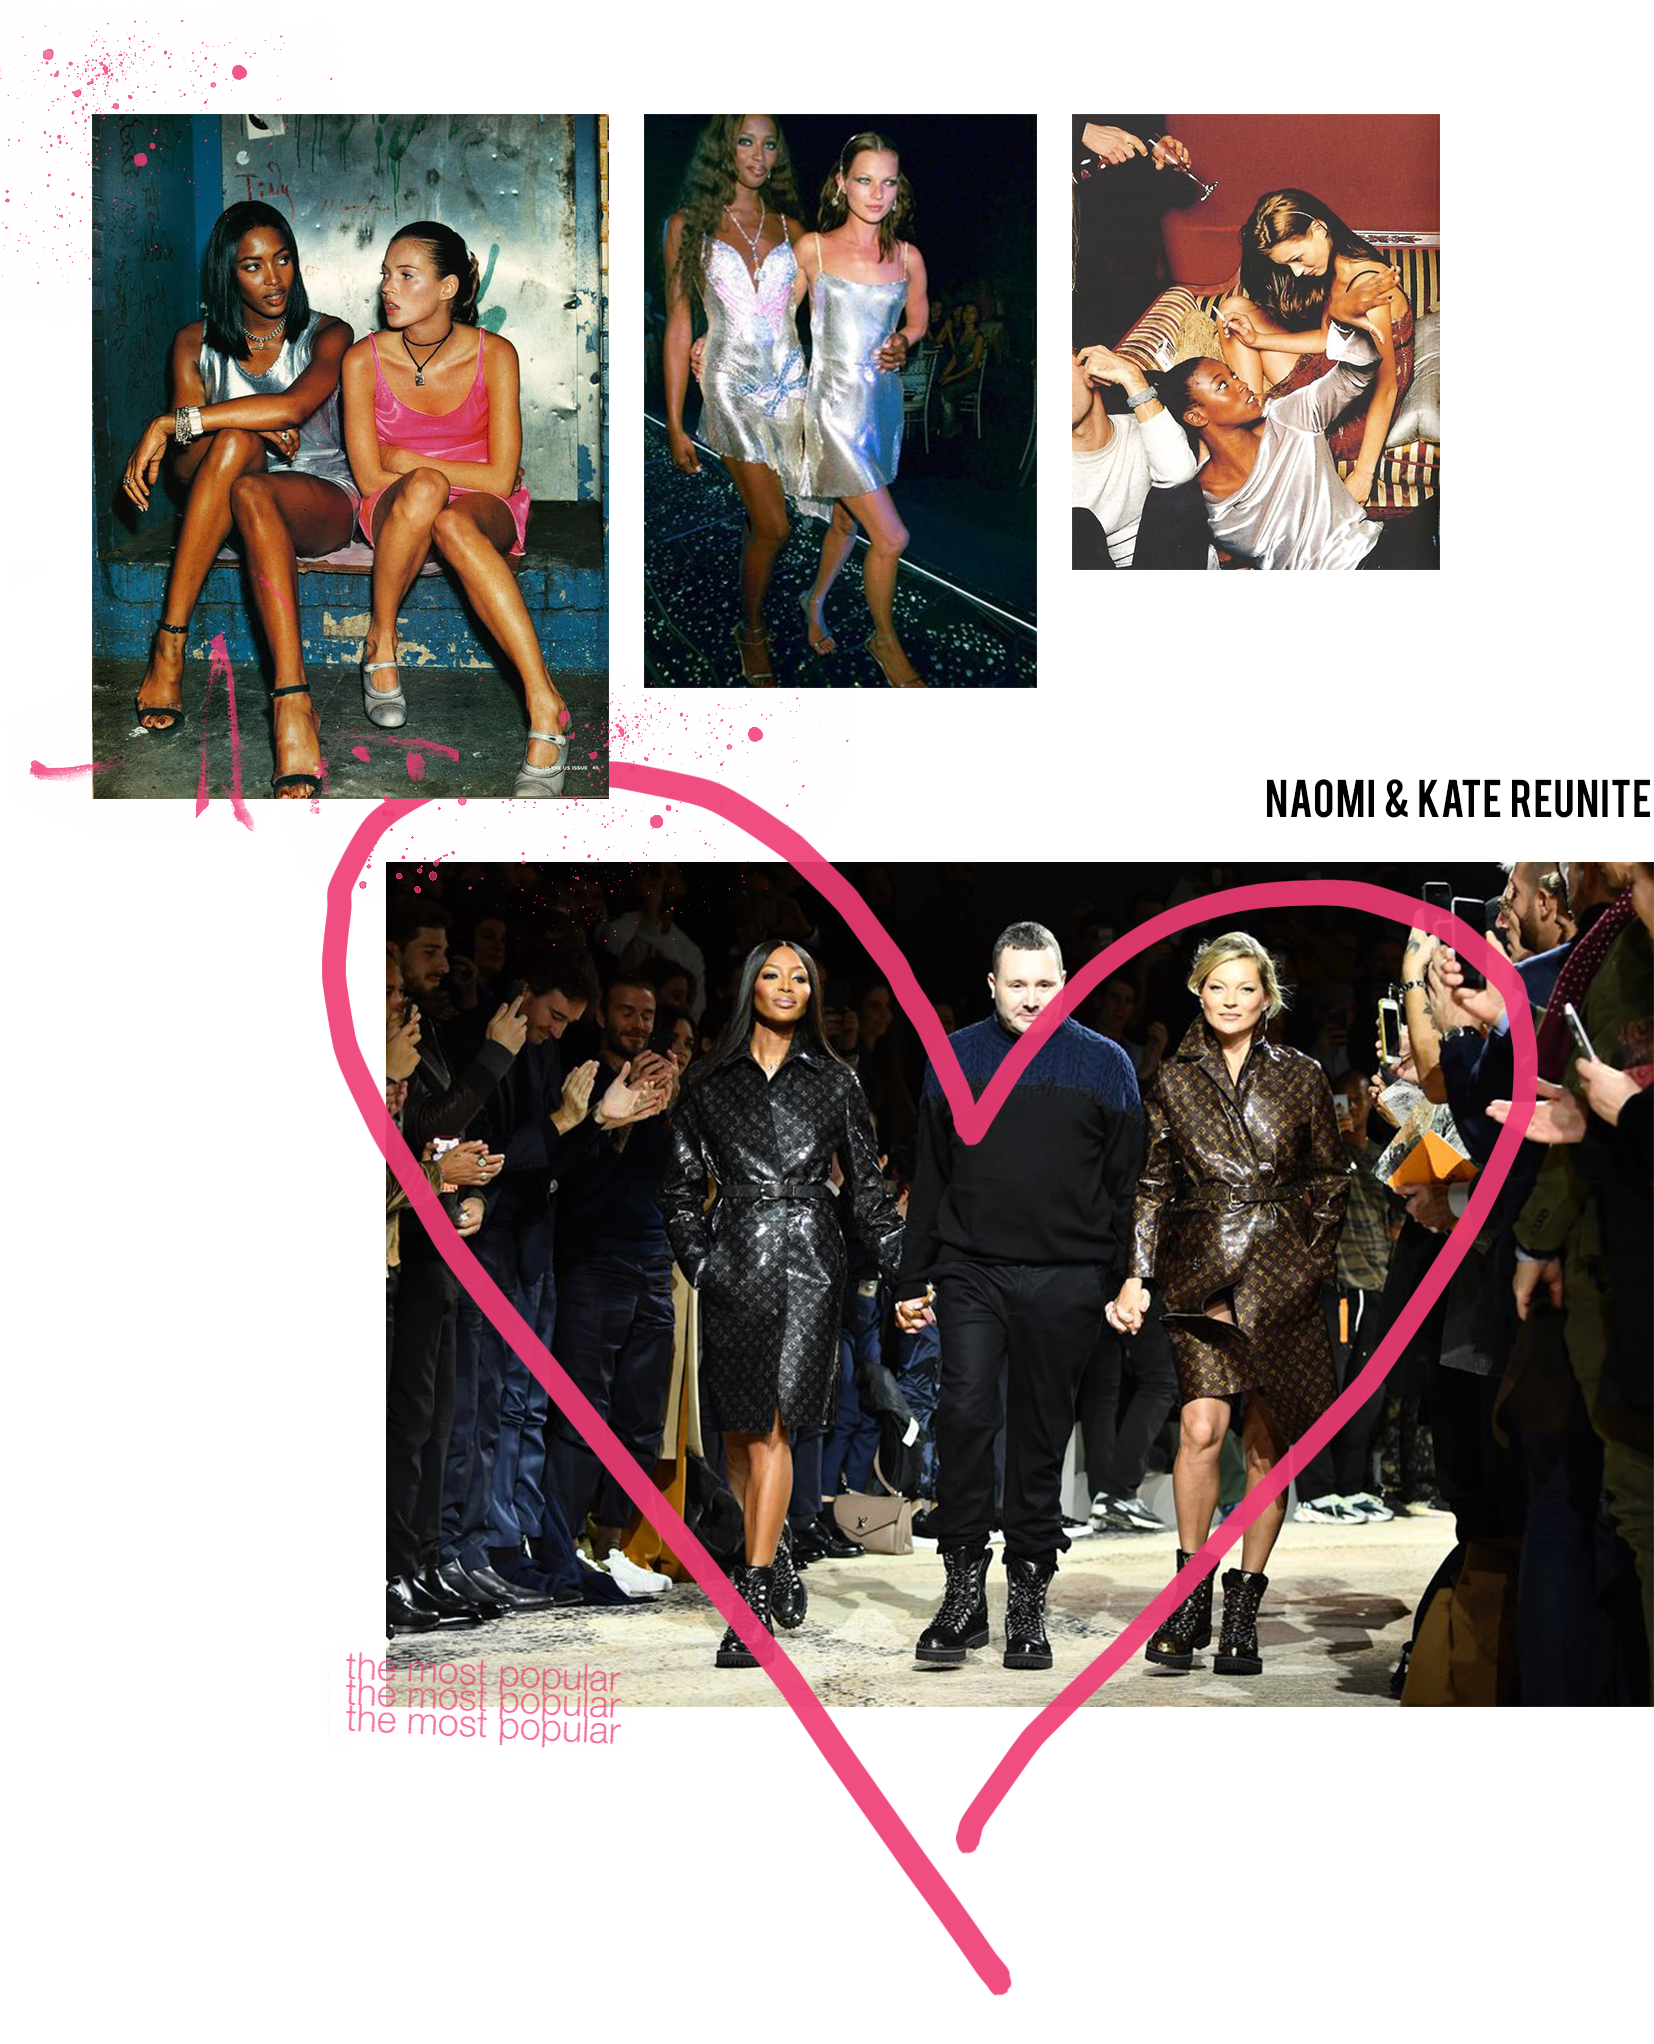 Image collage of Naomi Campbell and Kate Moss modelling